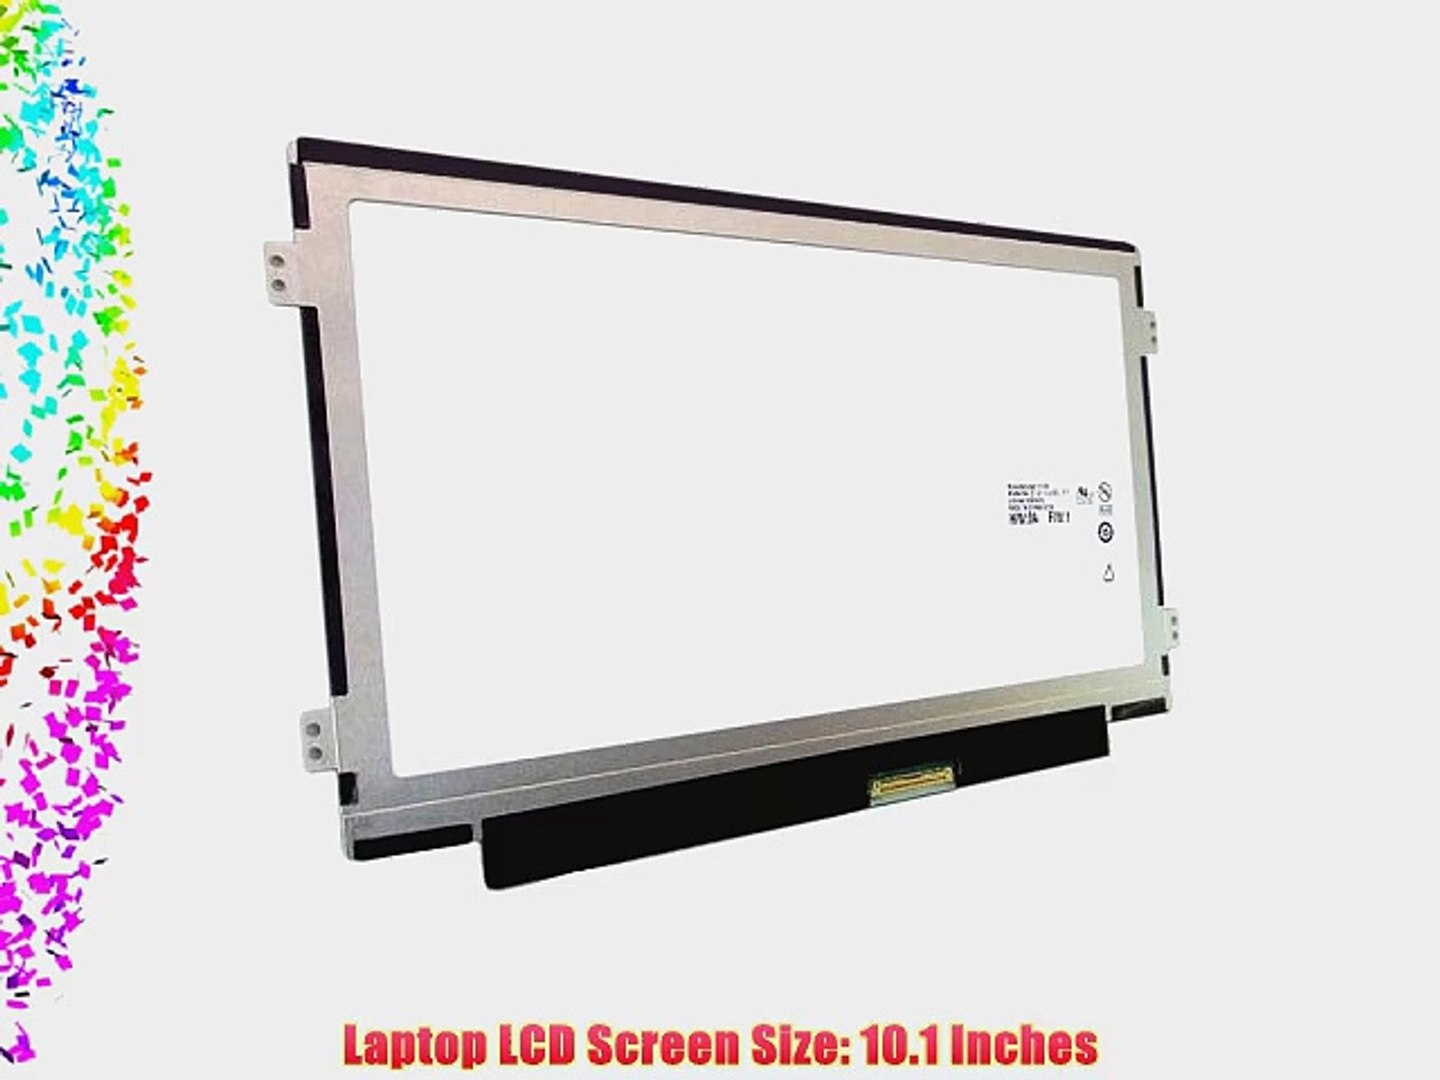 """Acer Aspire One D250-1371 Replacement LAPTOP LCD Screen 10.1/"""" WSVGA LED DIODE"""